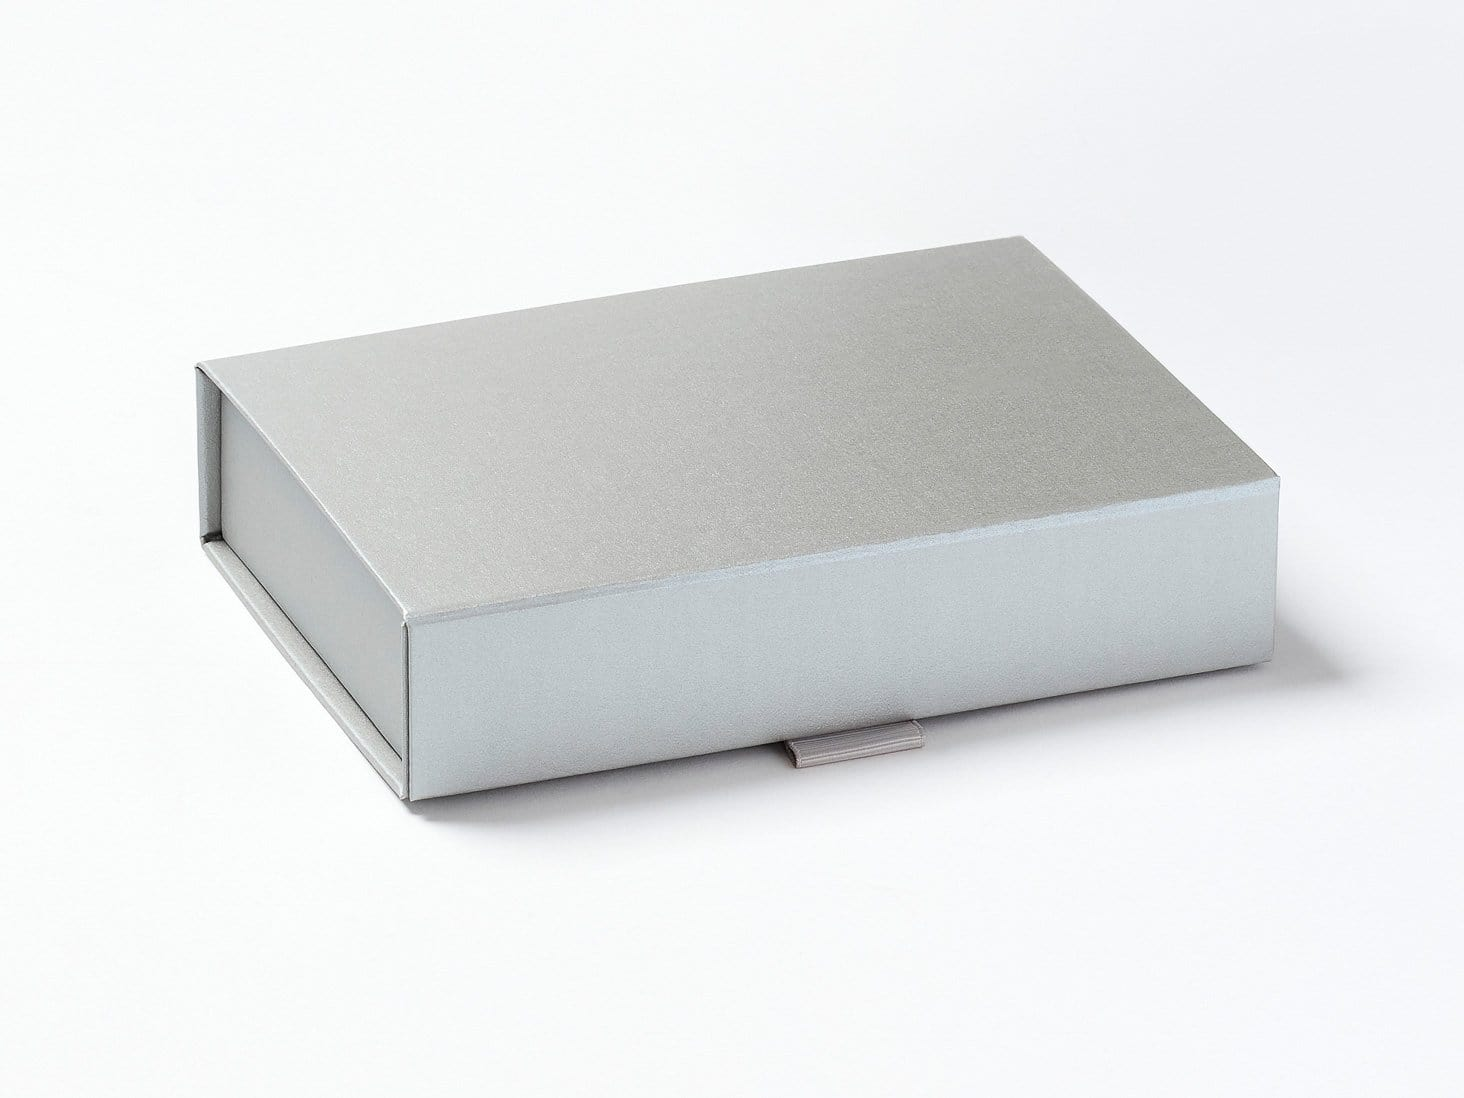 Silver A6 Shallow Gift Box Assembled